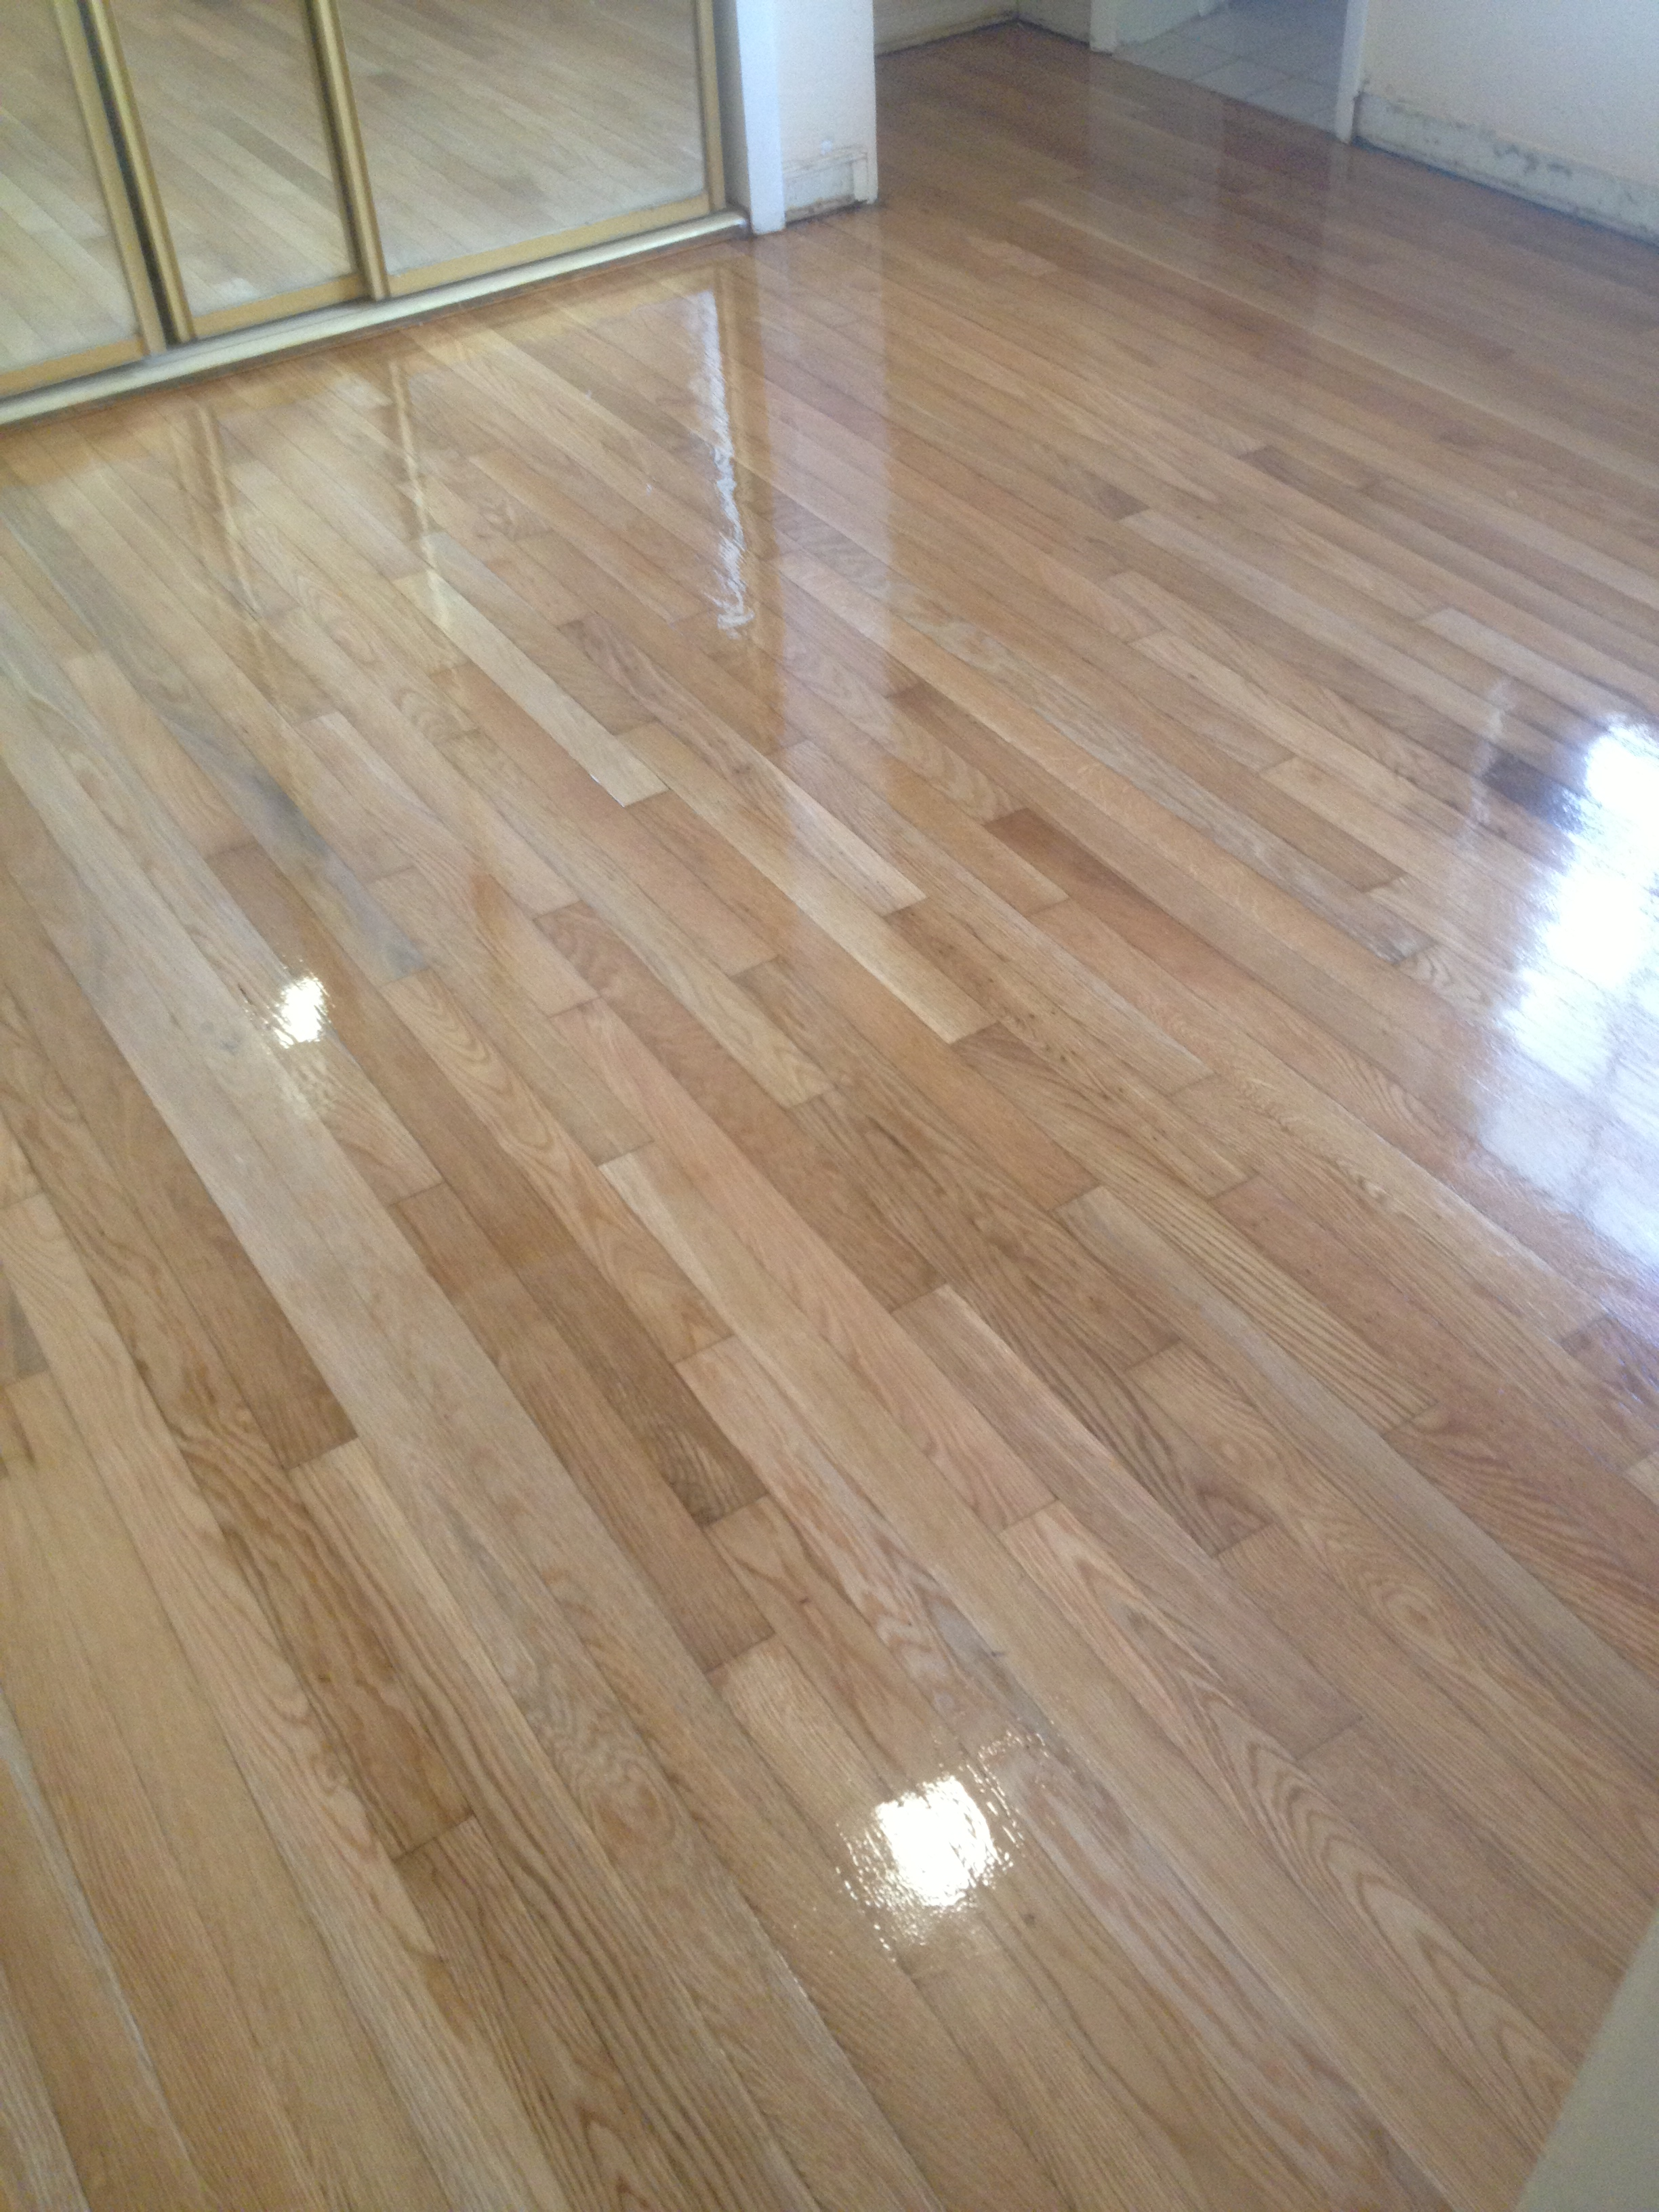 apex wood floors inc at 6499 sw 39th st miami fl on fave